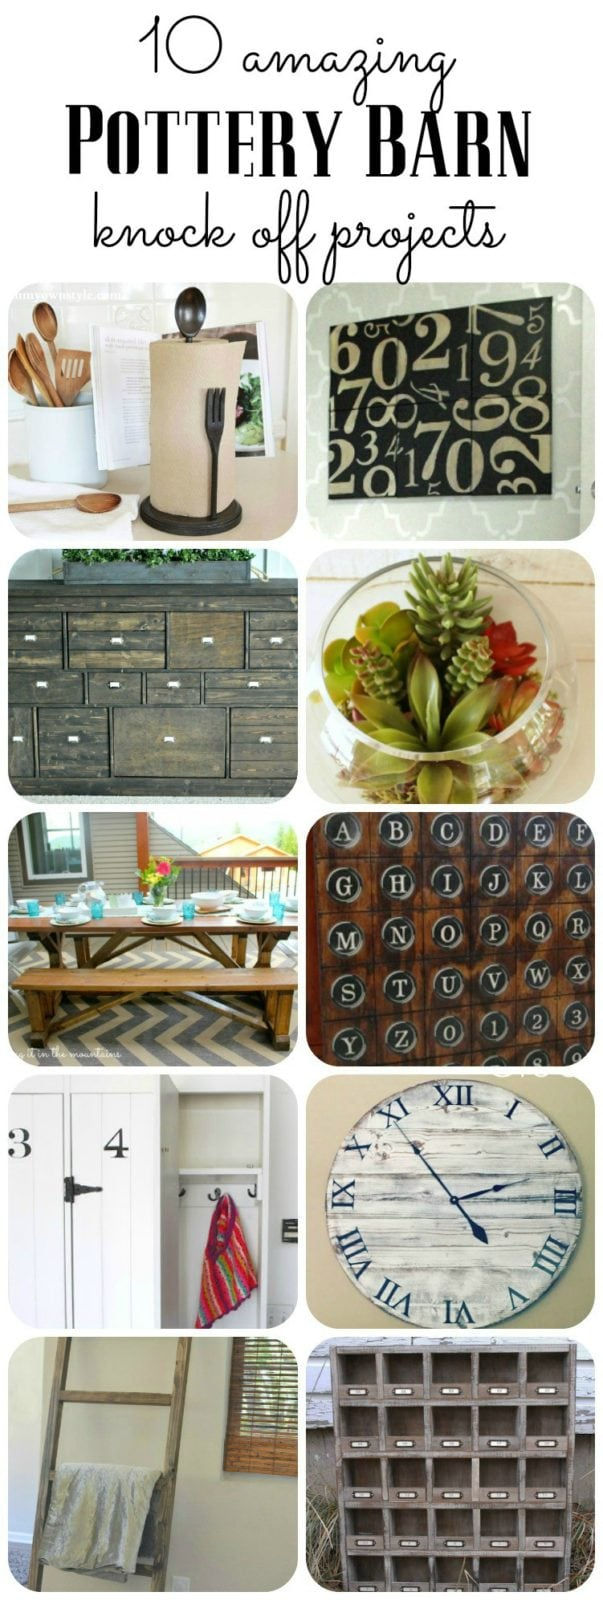 These 10 Pottery Barn Knock Off Projects Are Absolutely Amazing! I Want To